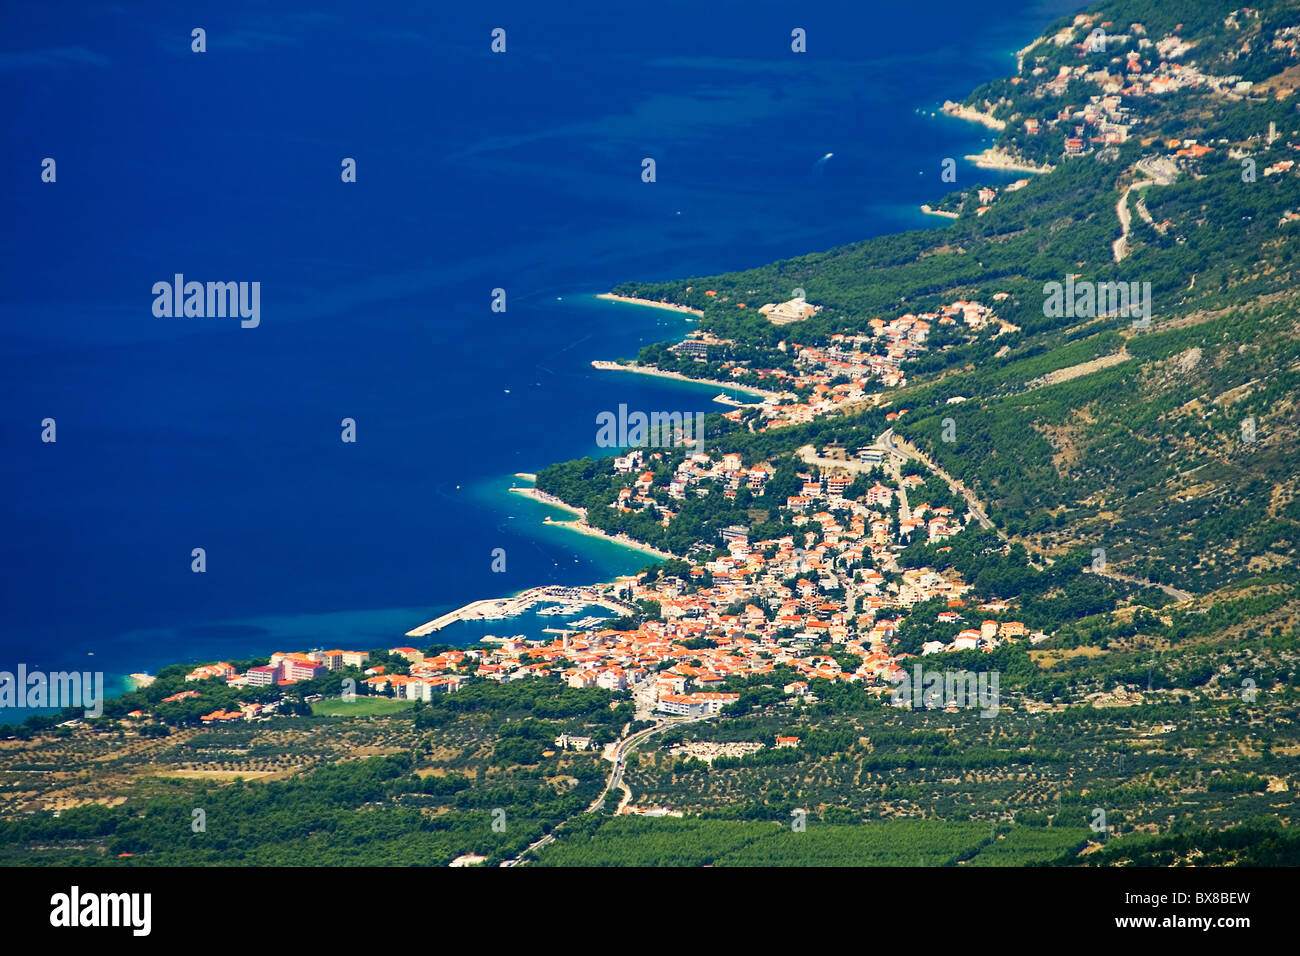 the coast of Baska Voda in Croatia - Stock Image